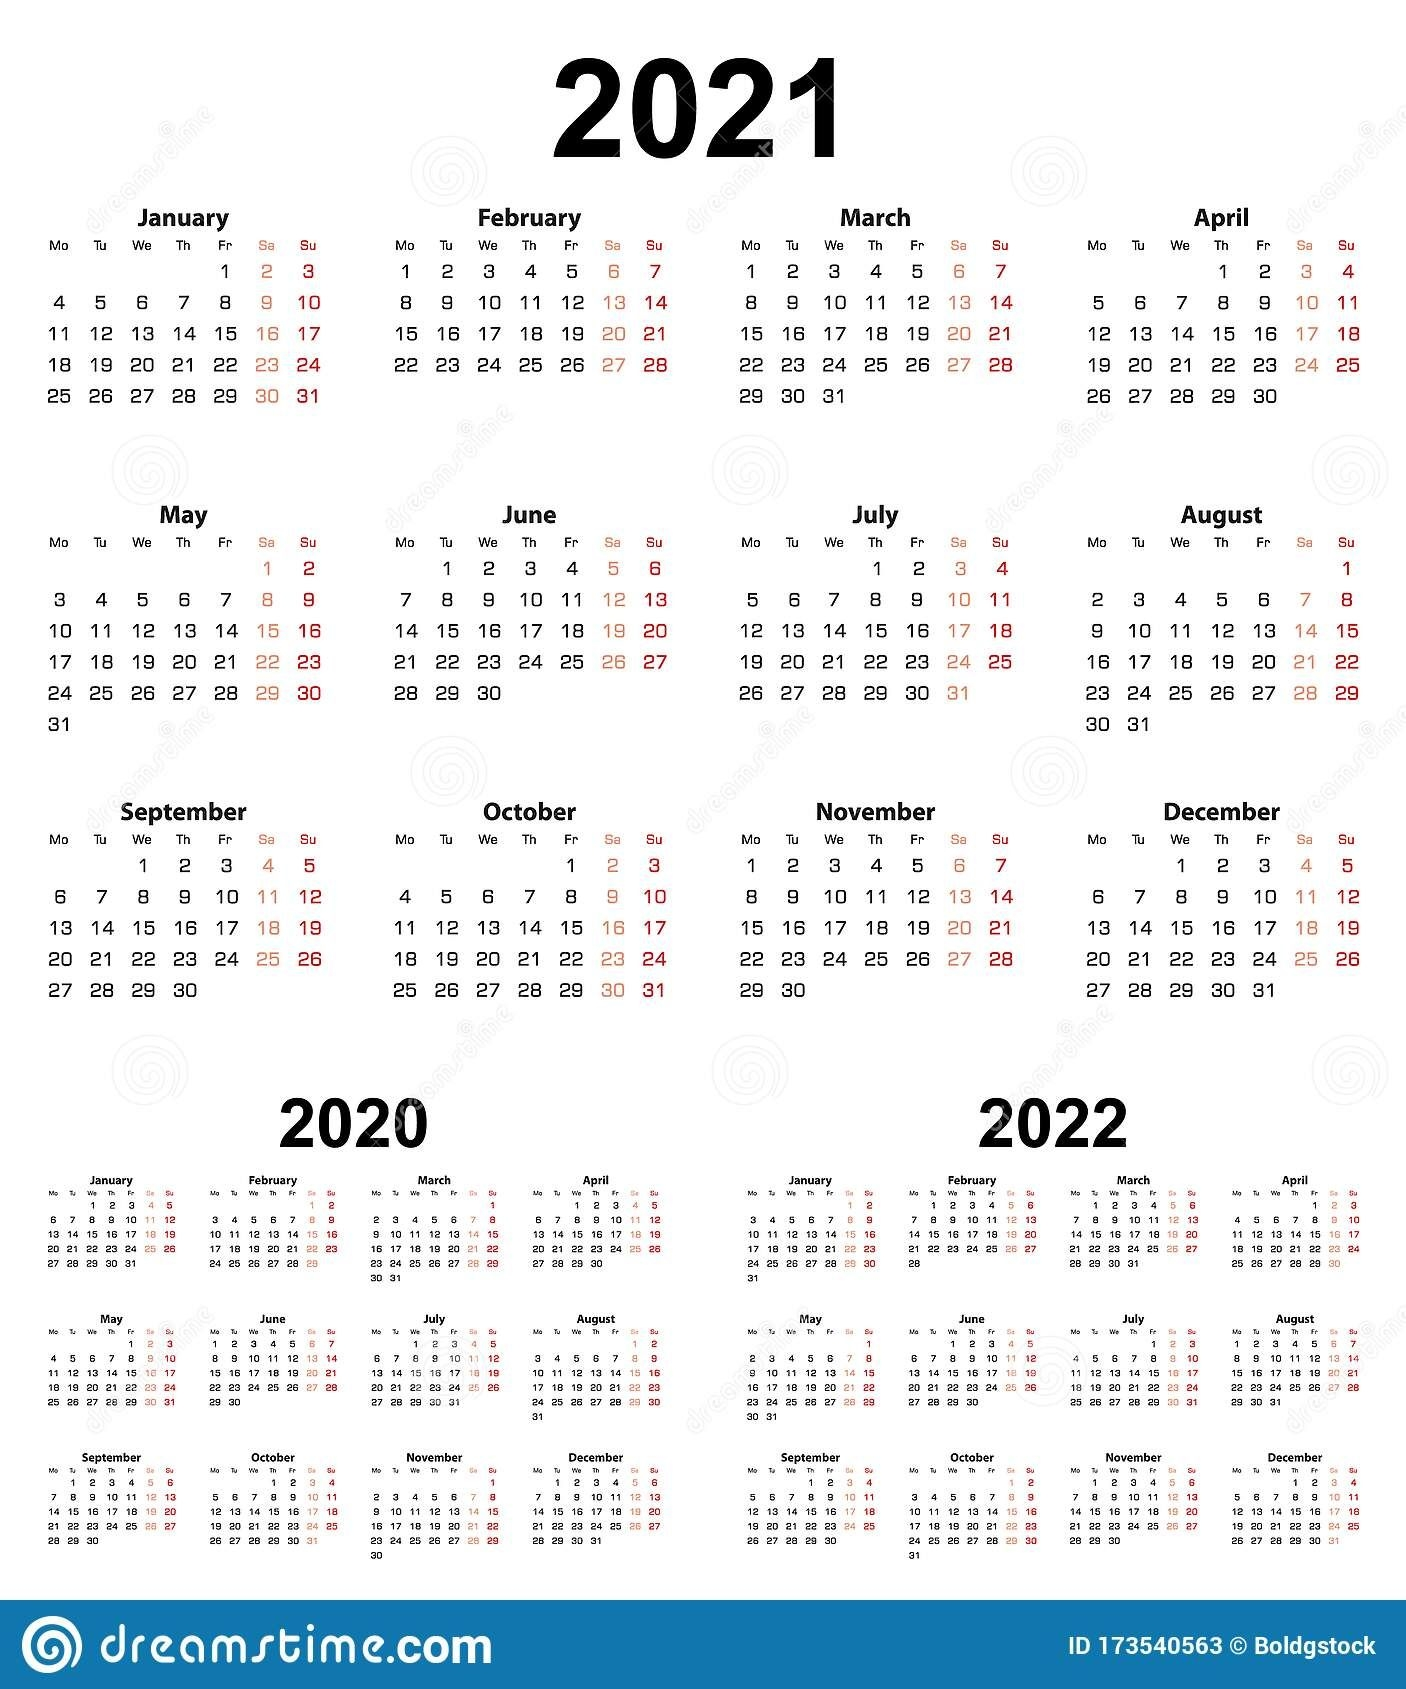 Basic Calendar For Year 2021 And 2020, 2022 Week Starts On